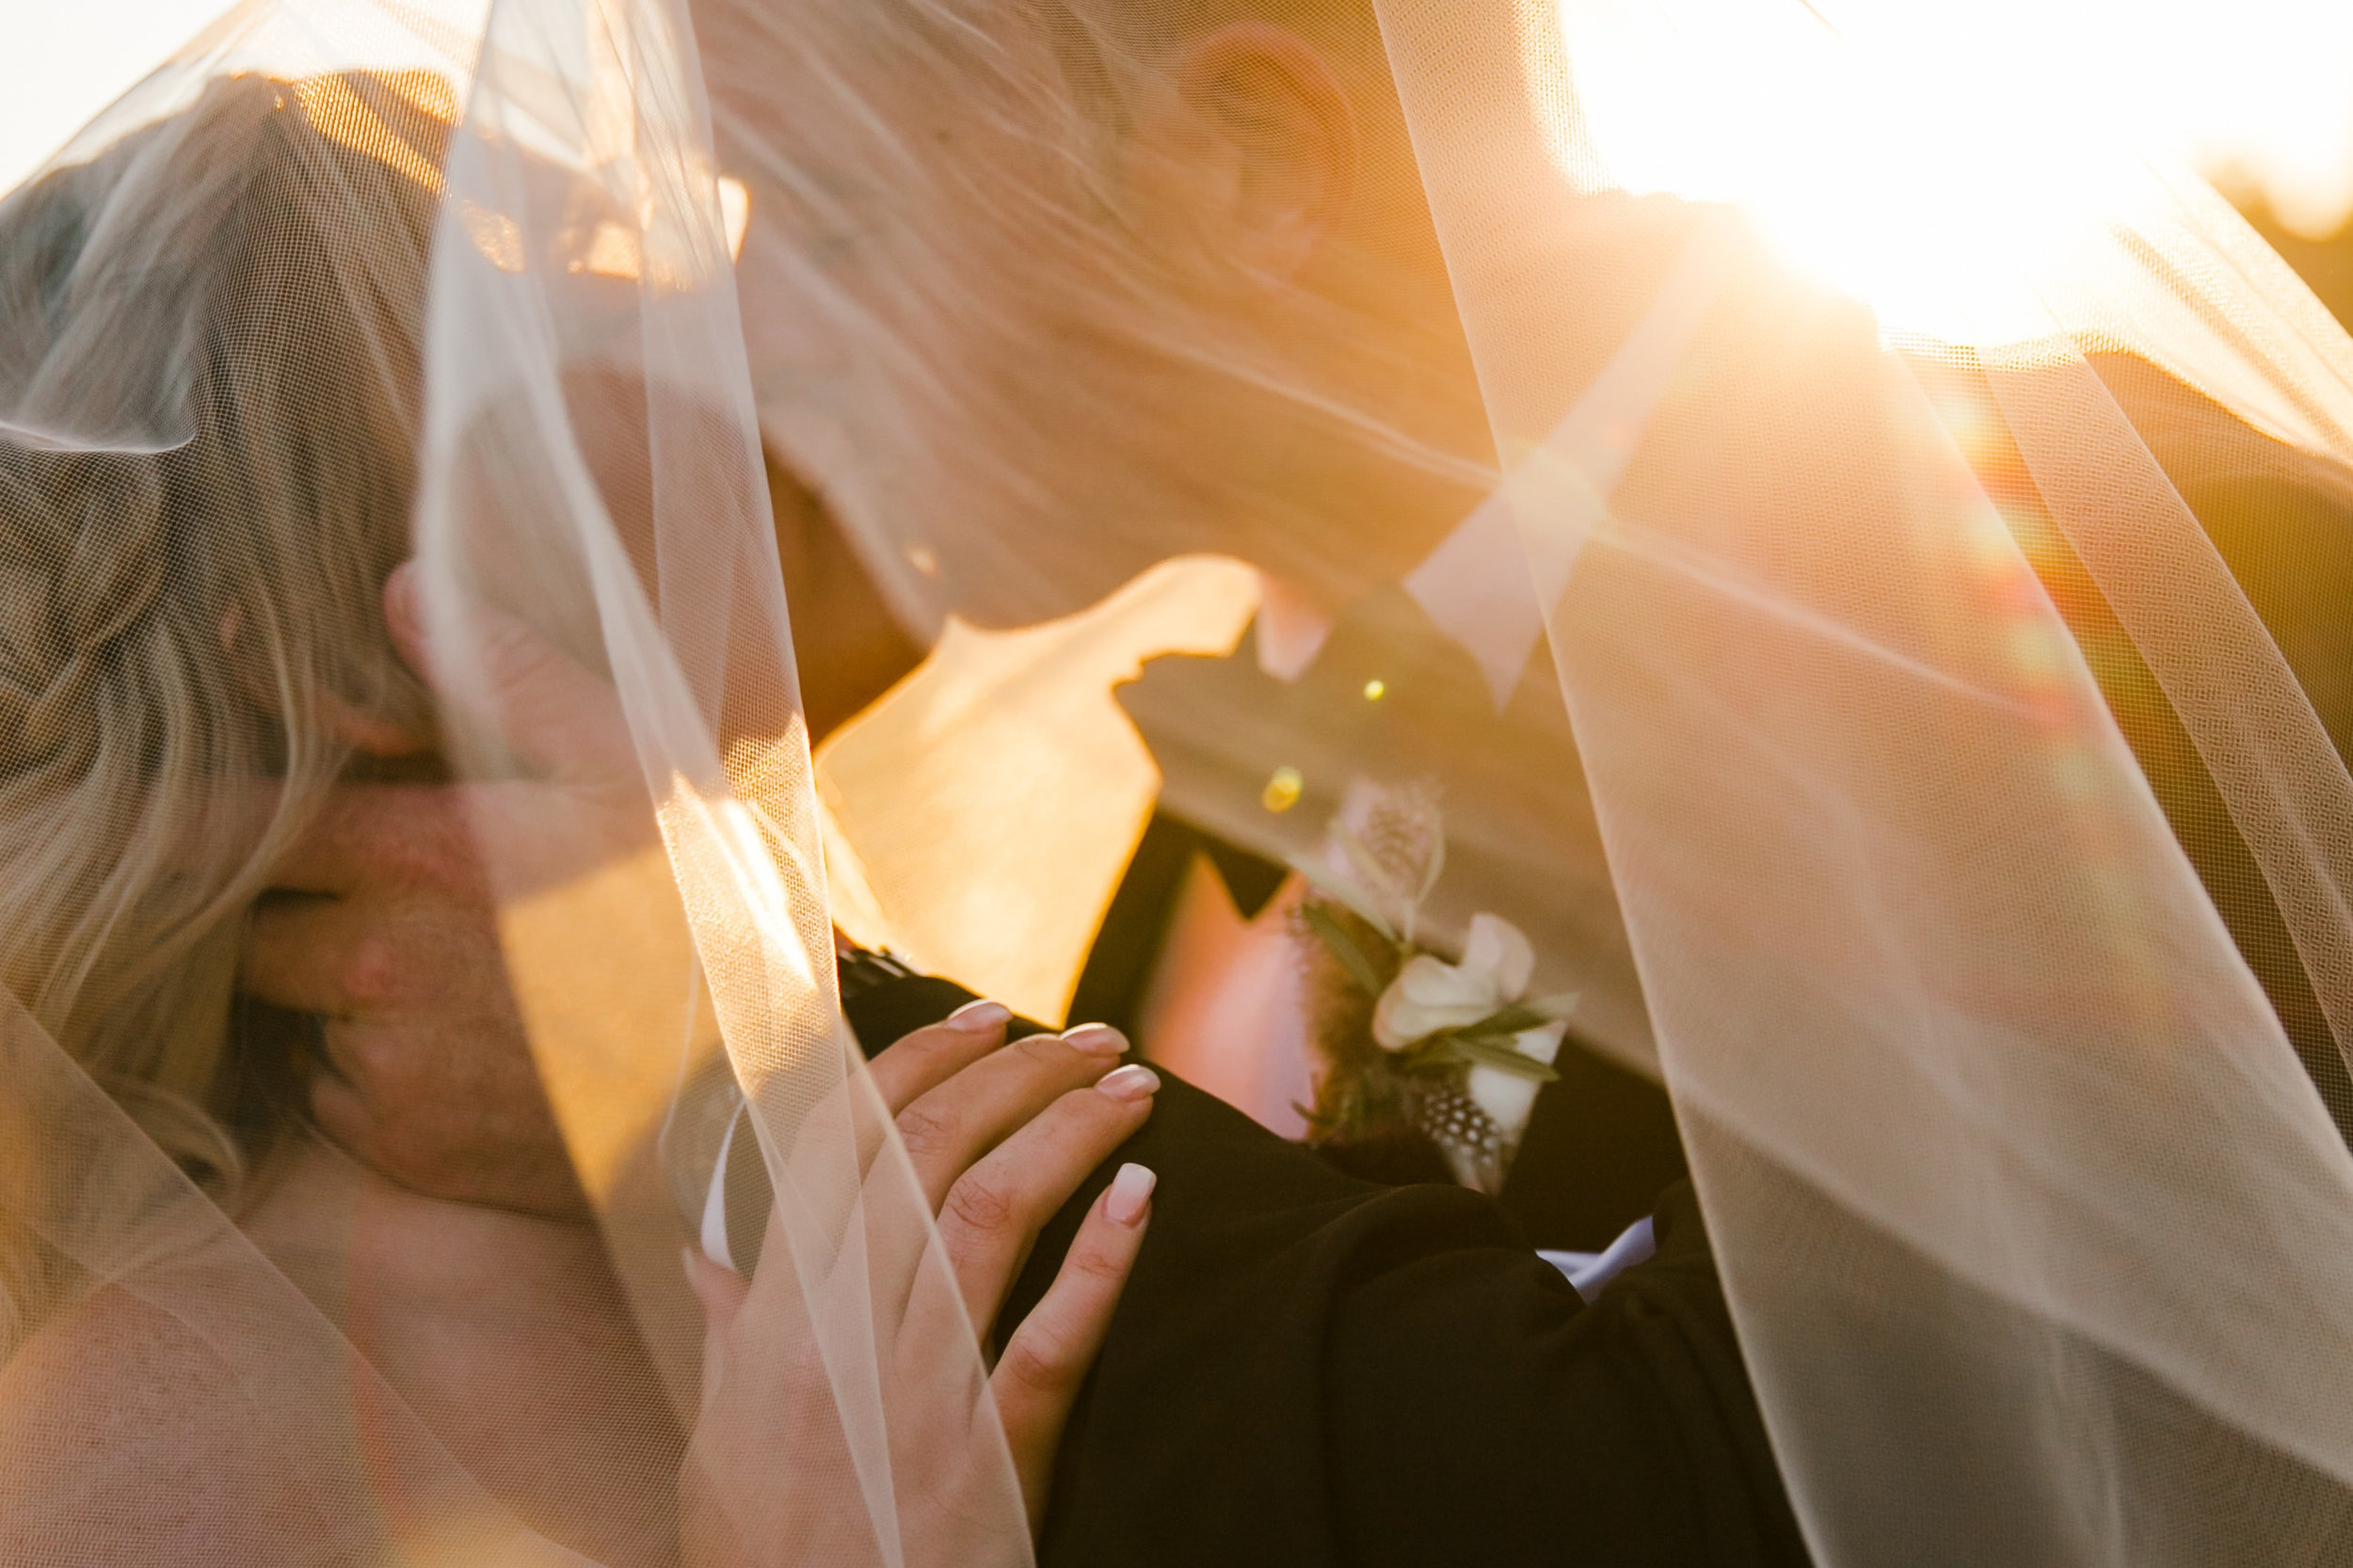 Rebecca + Danny - We are absolutely OBSESSED with these photos!!! Thank you so much! Becka <3